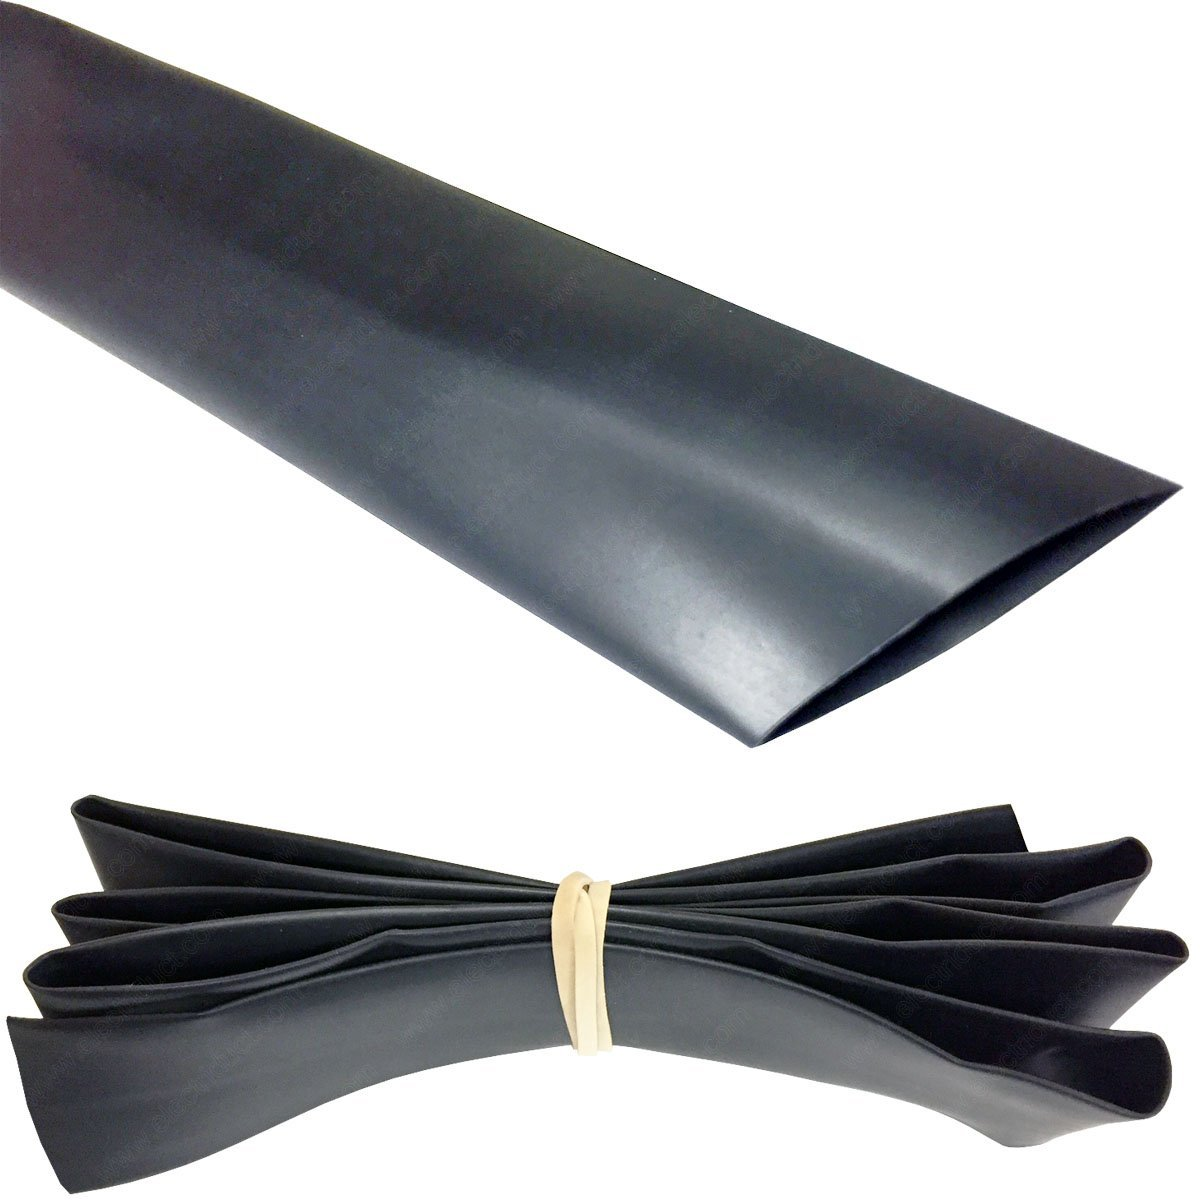 1 heat shrink tubing 2 1 50ft black ebay. Black Bedroom Furniture Sets. Home Design Ideas